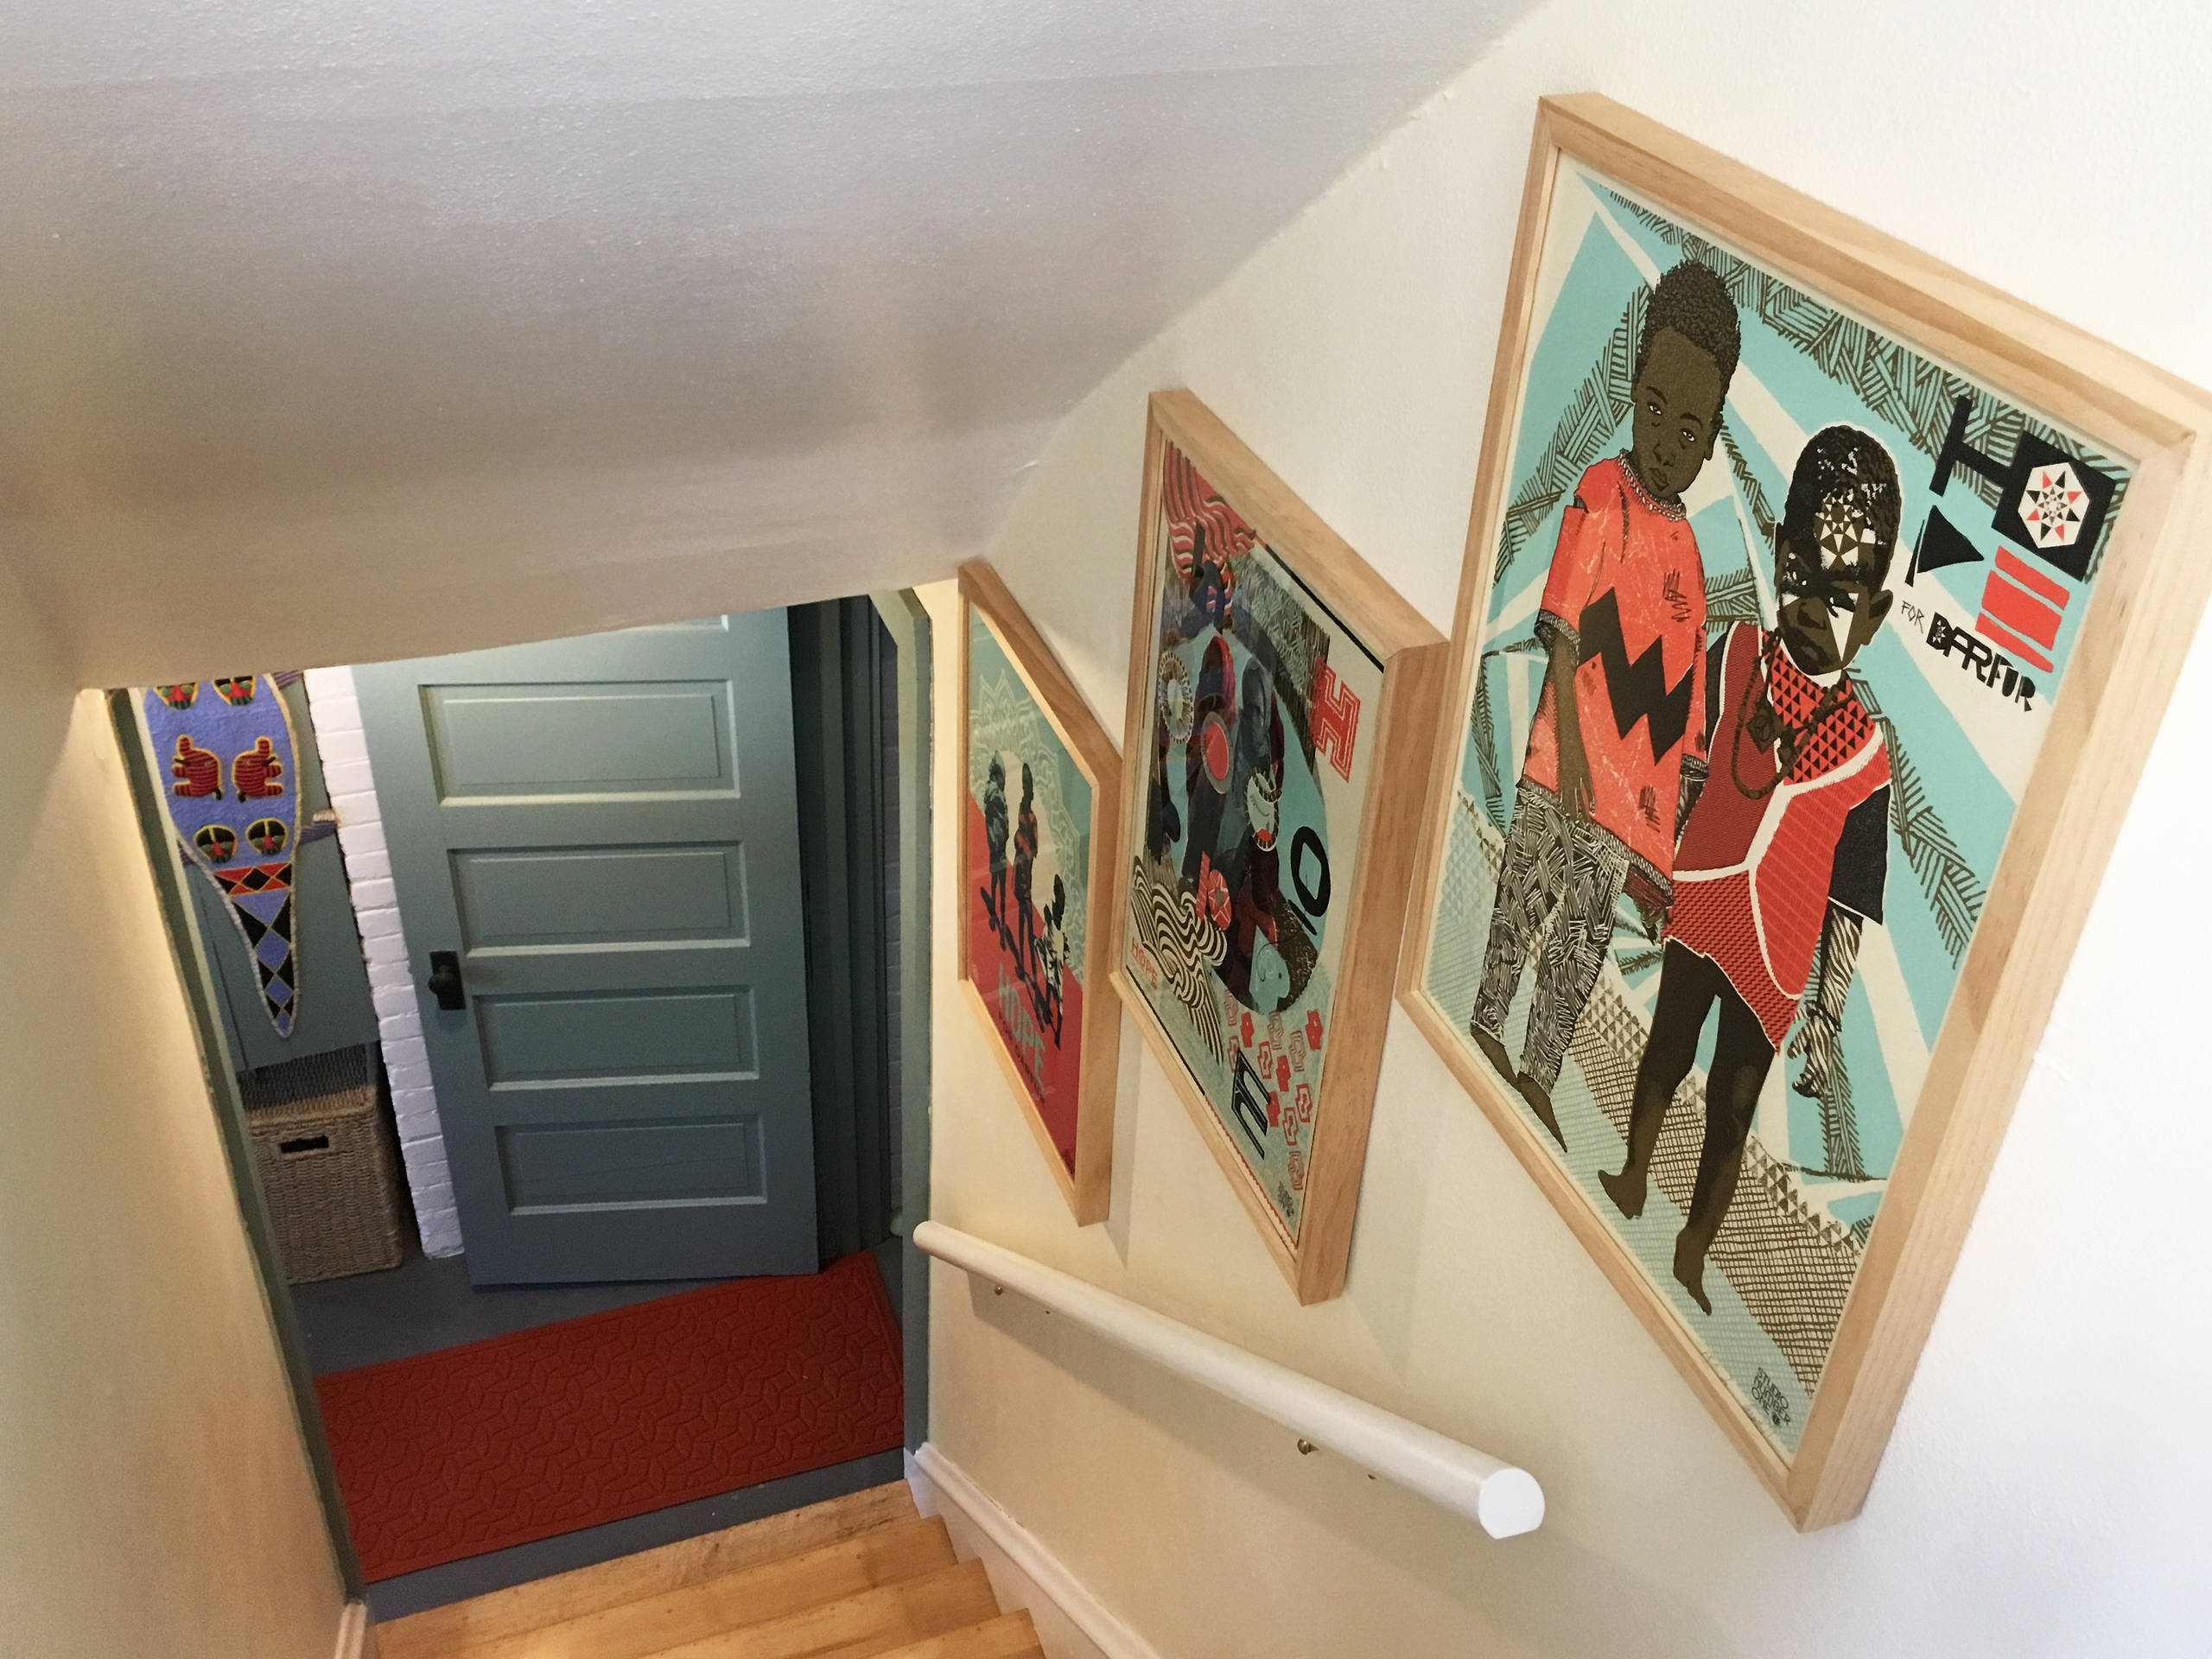 American Four Square Remodel, Shorewood, WI. Stairwell.